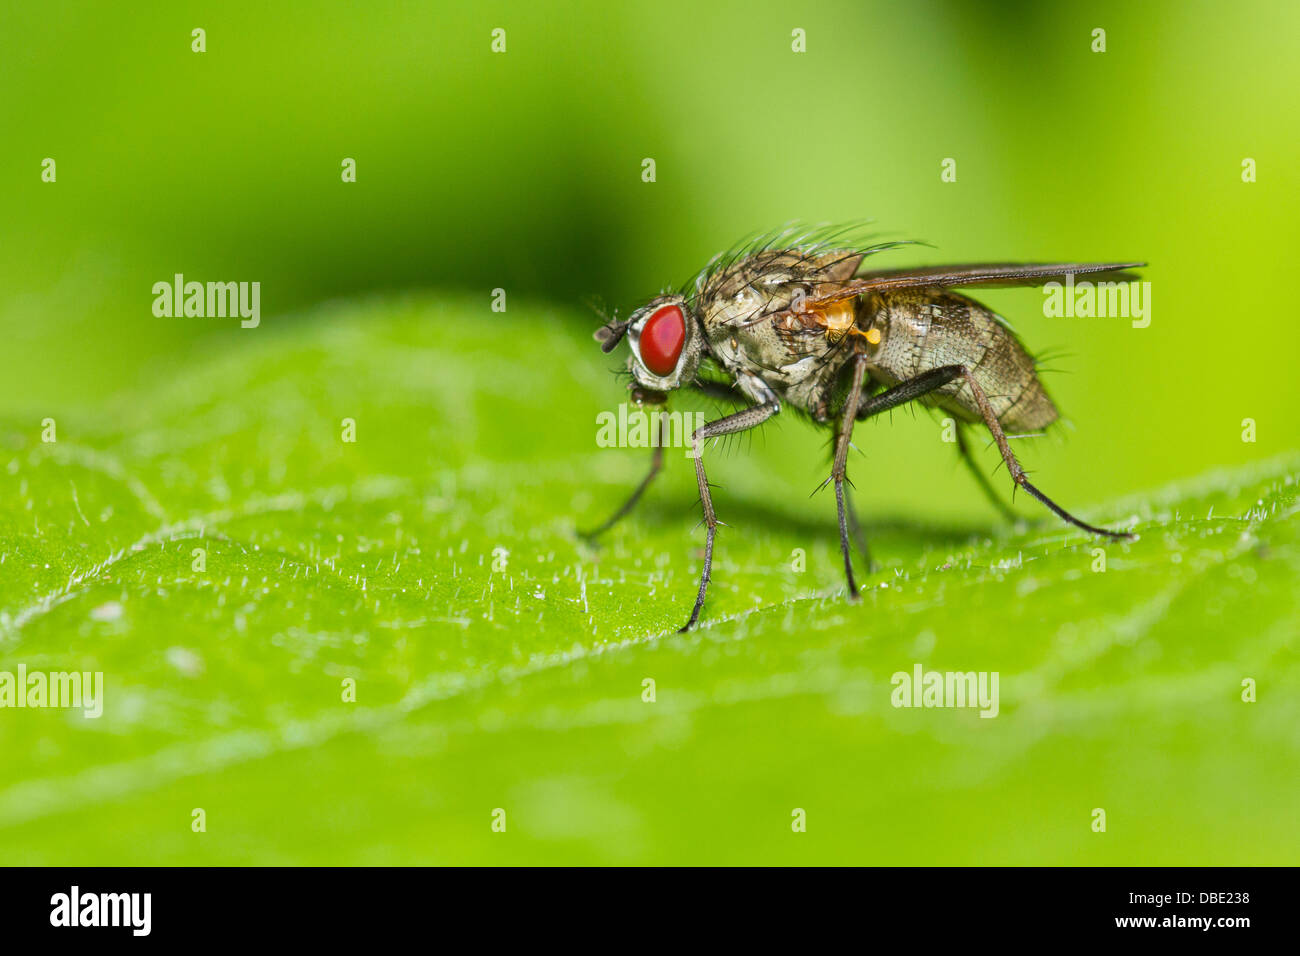 Tachinid fly perched on a green leaf. Stock Photo